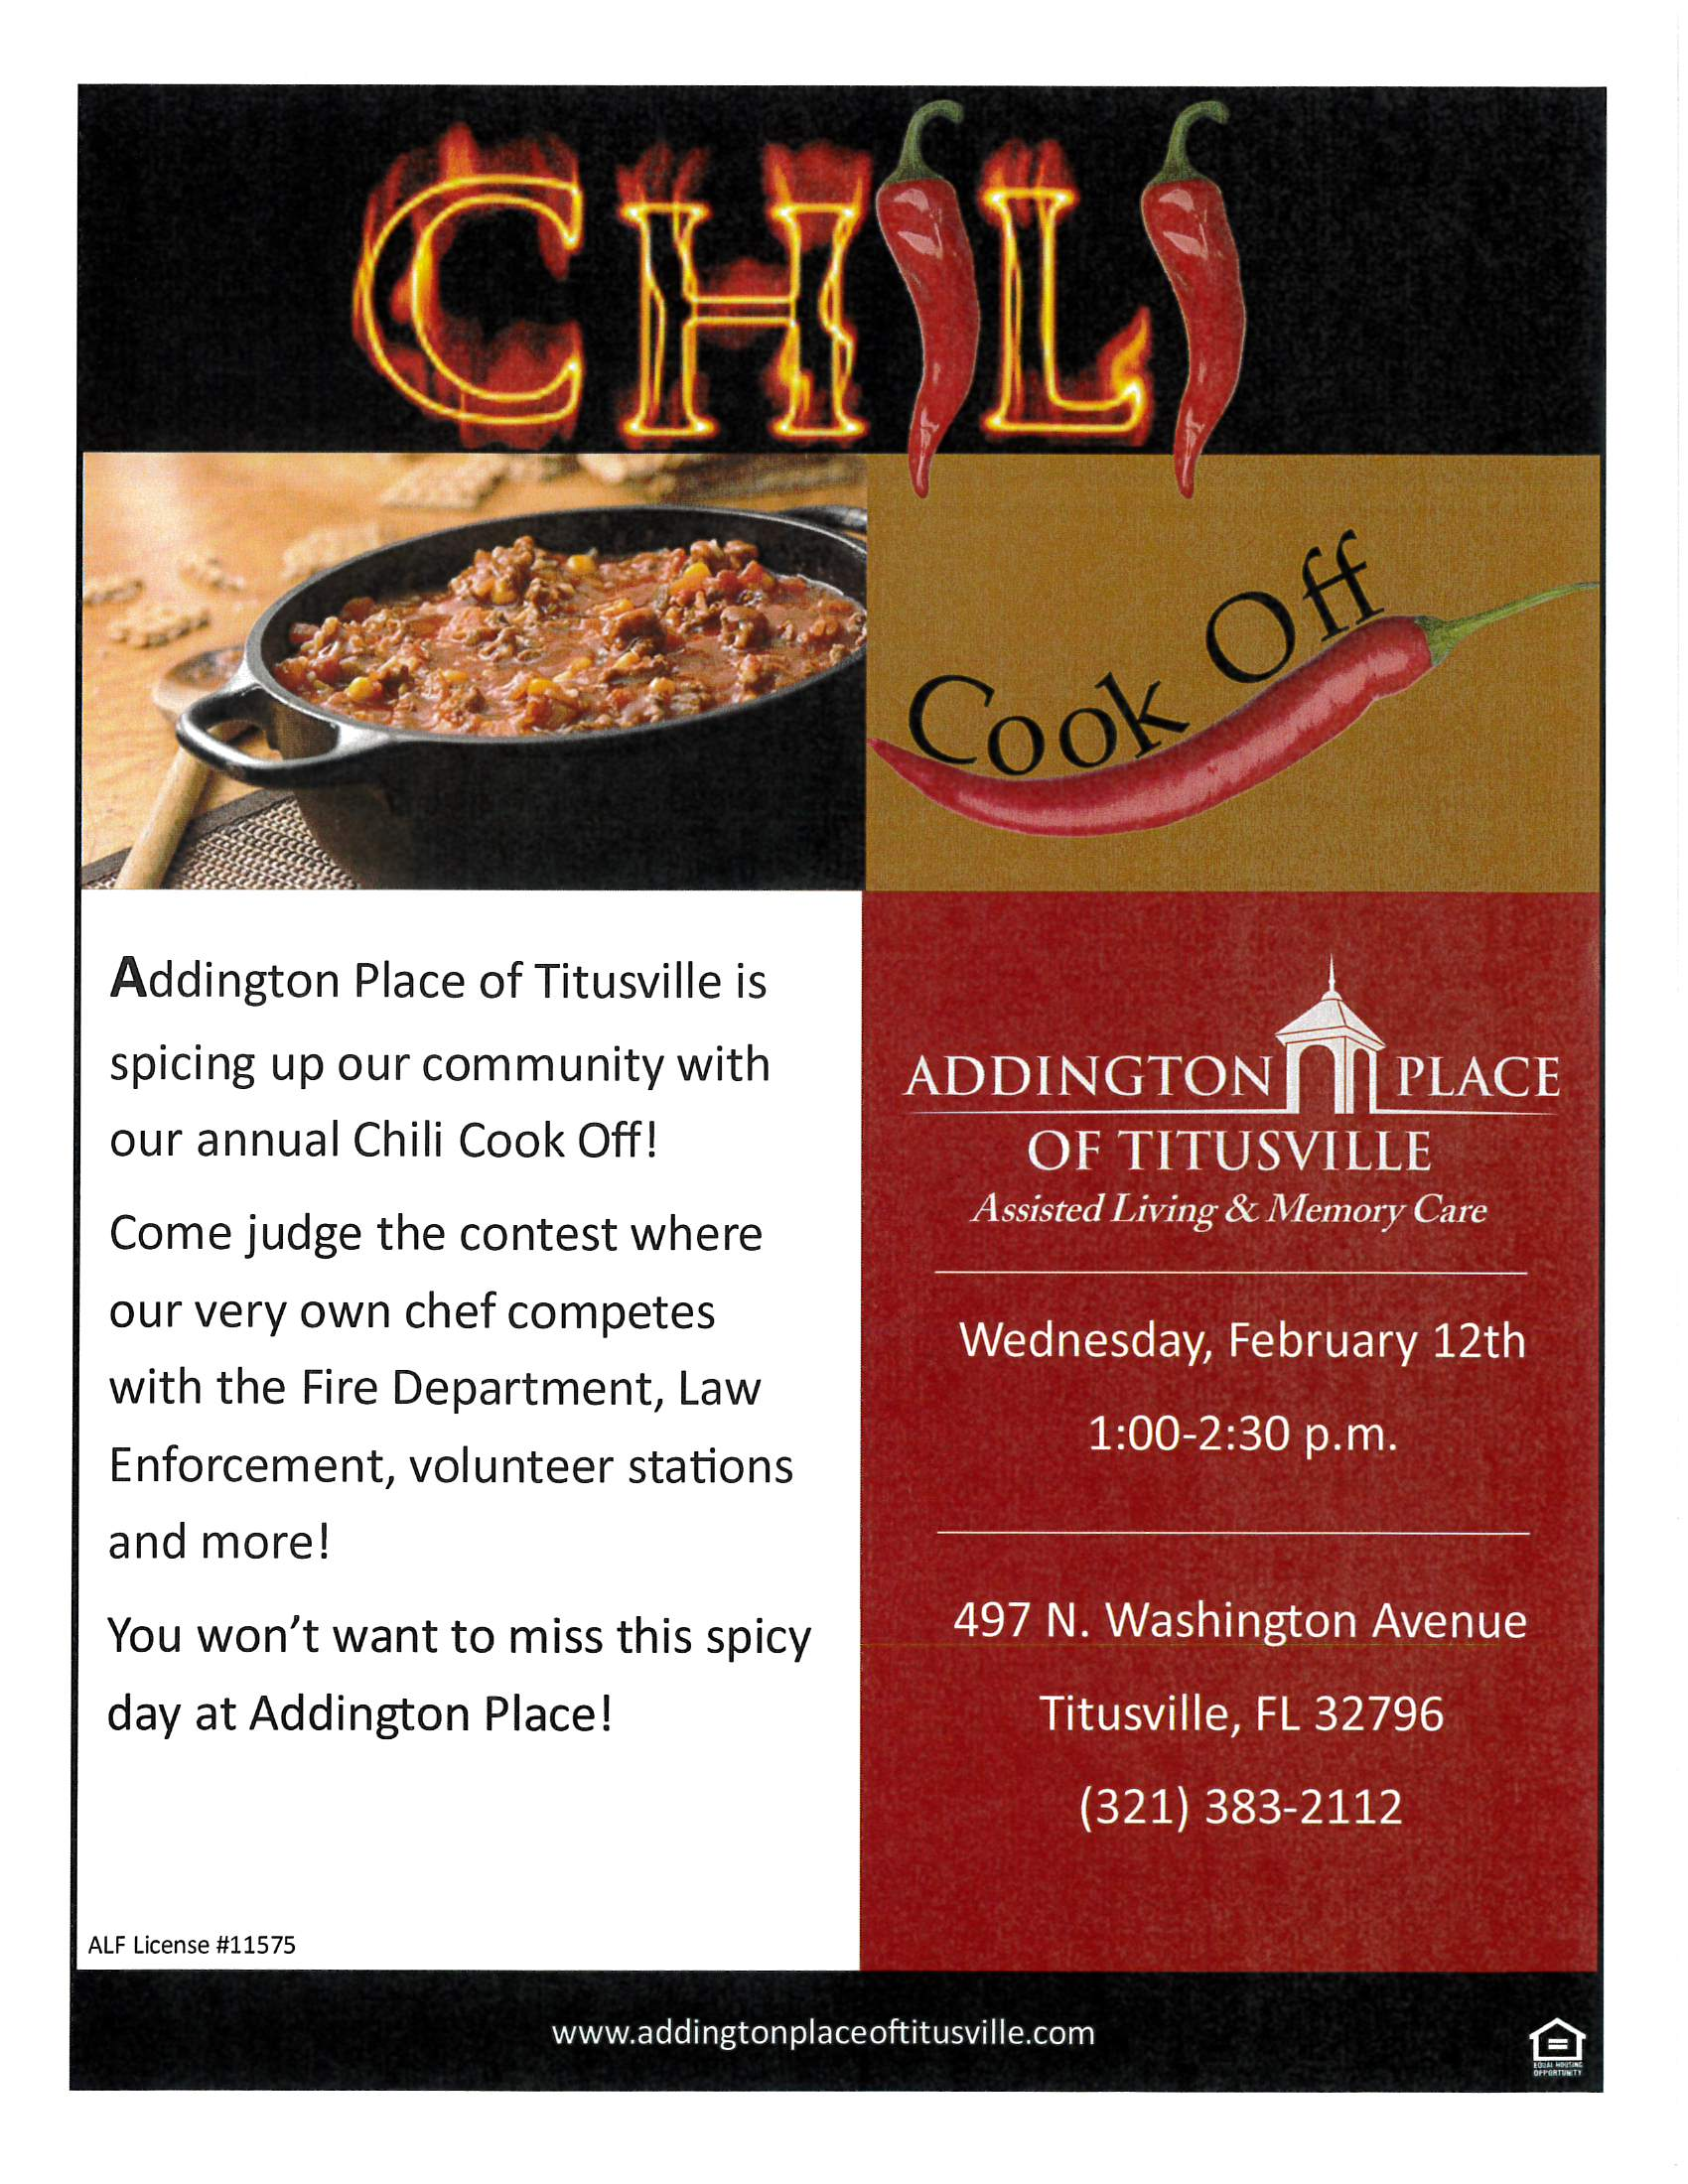 'Chili Cook Off' at Addington Place of Titusville